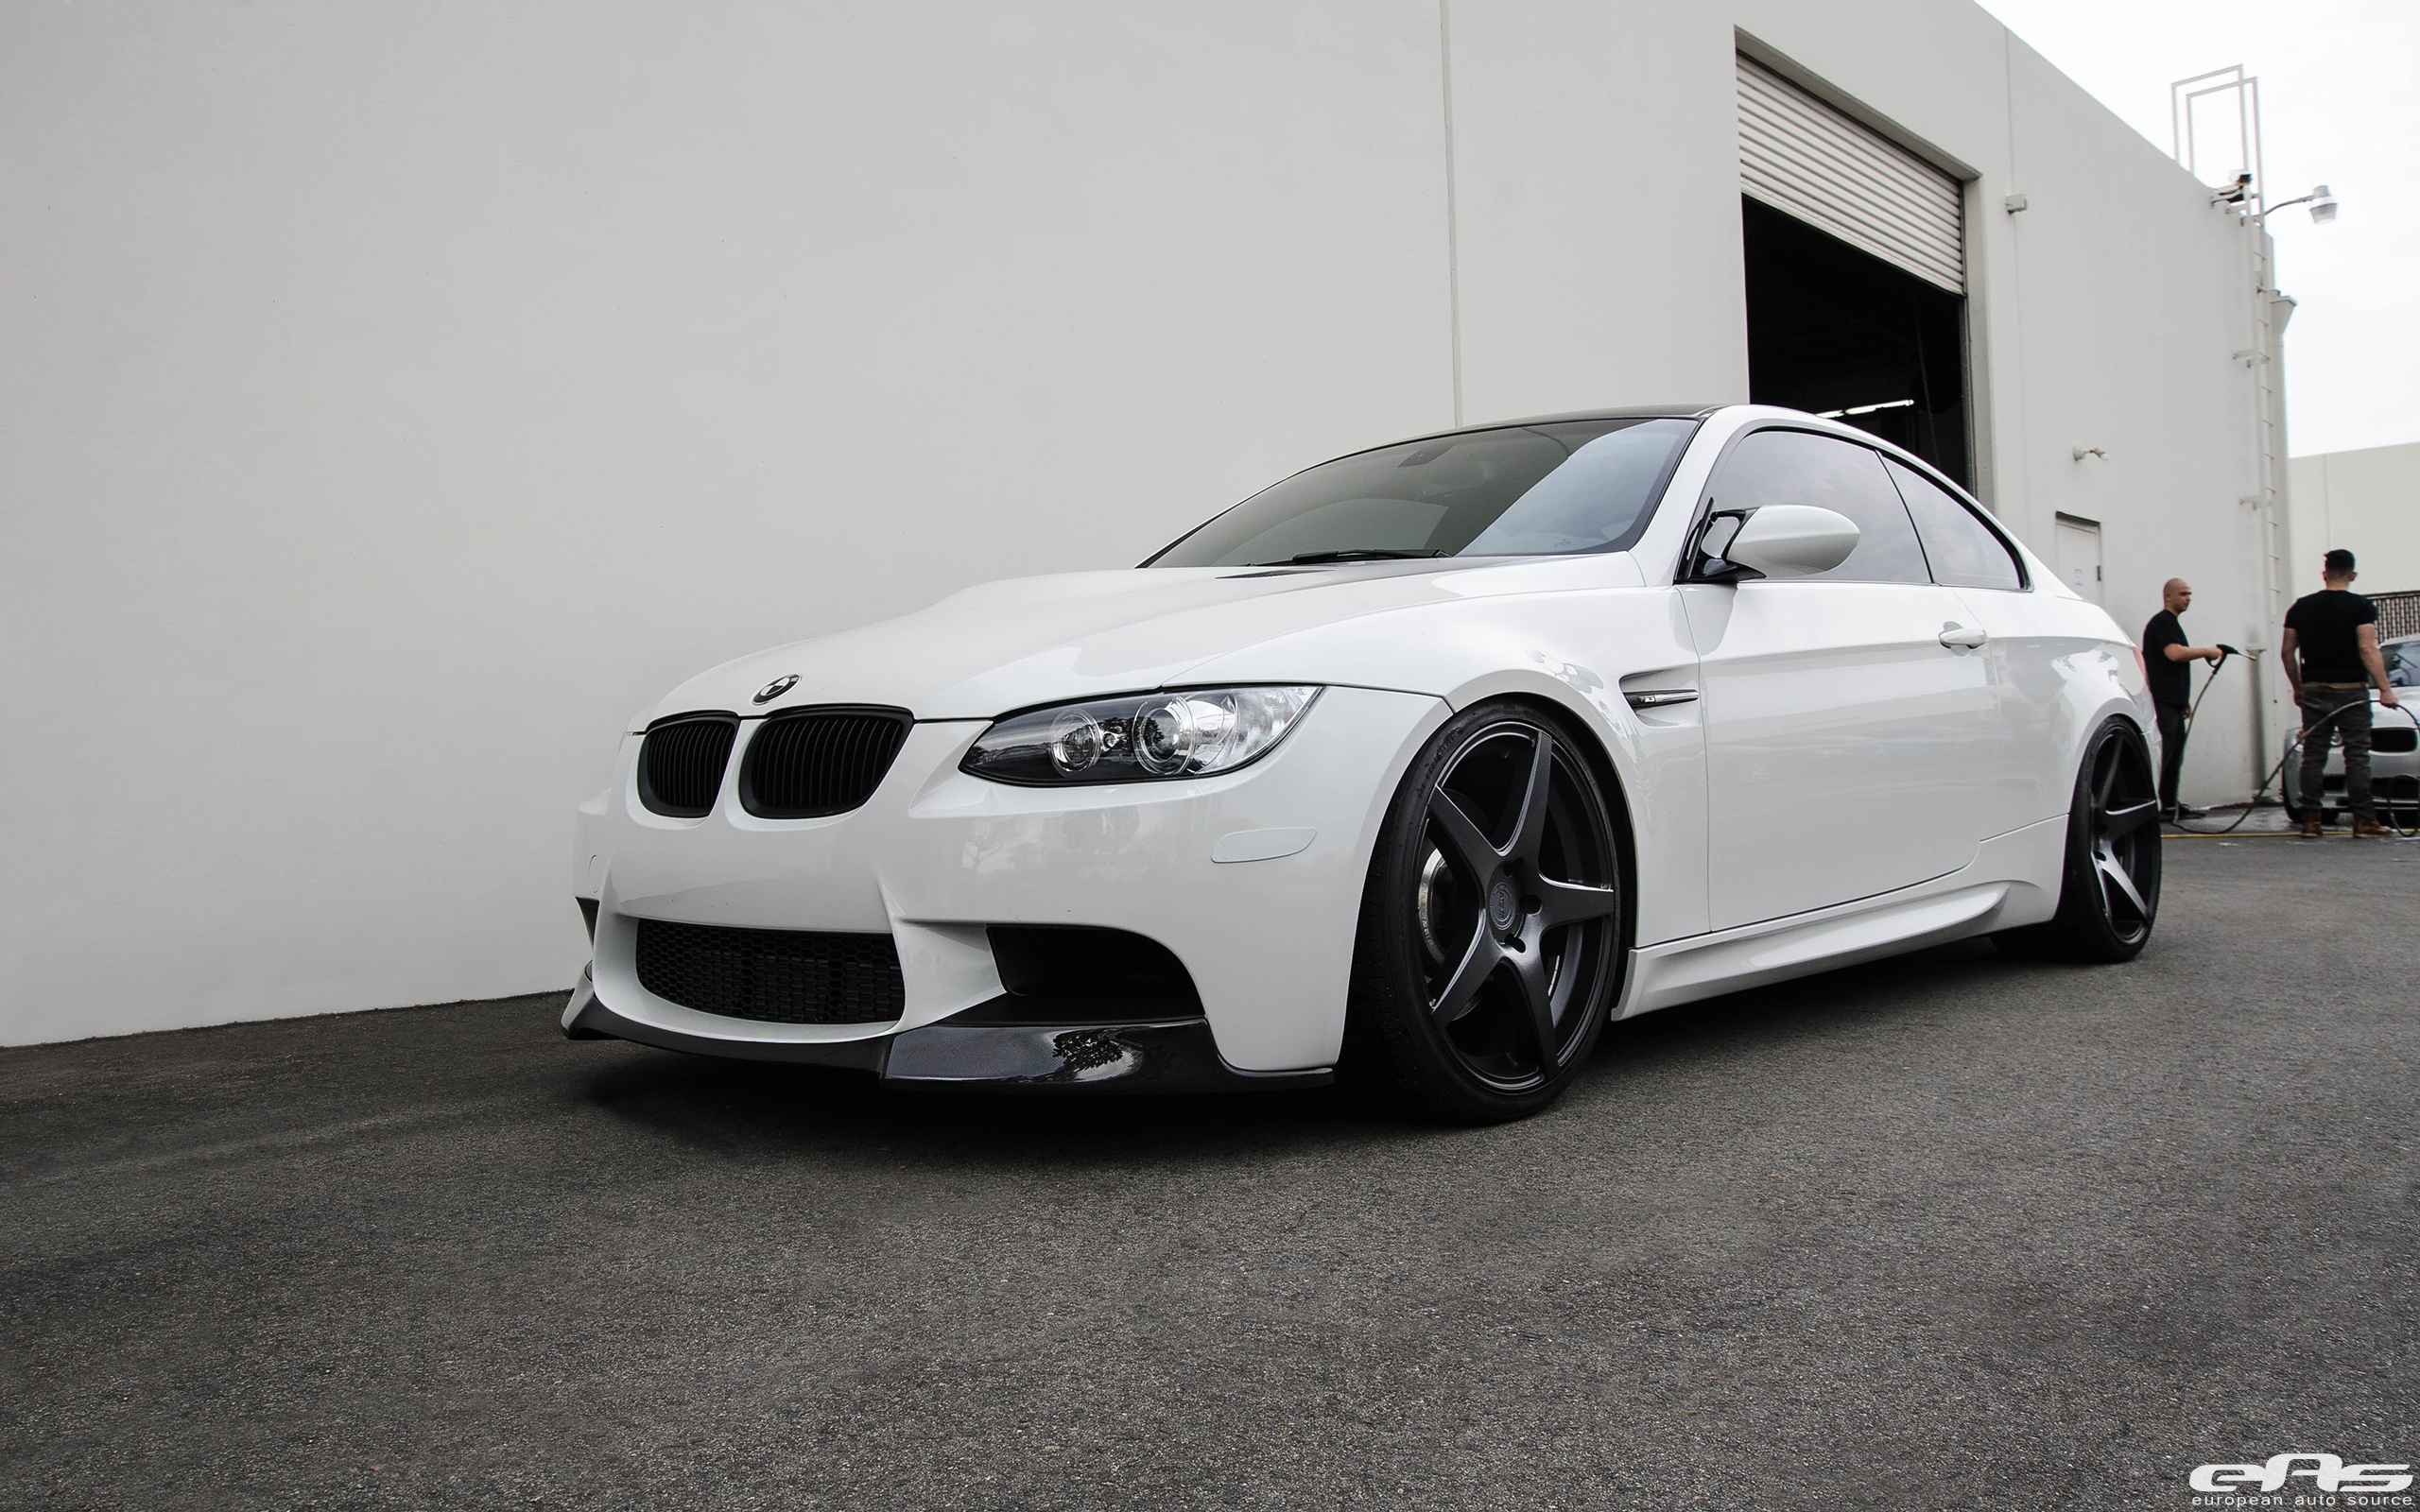 Alpine white e92 m3 rocking adv1 wheels